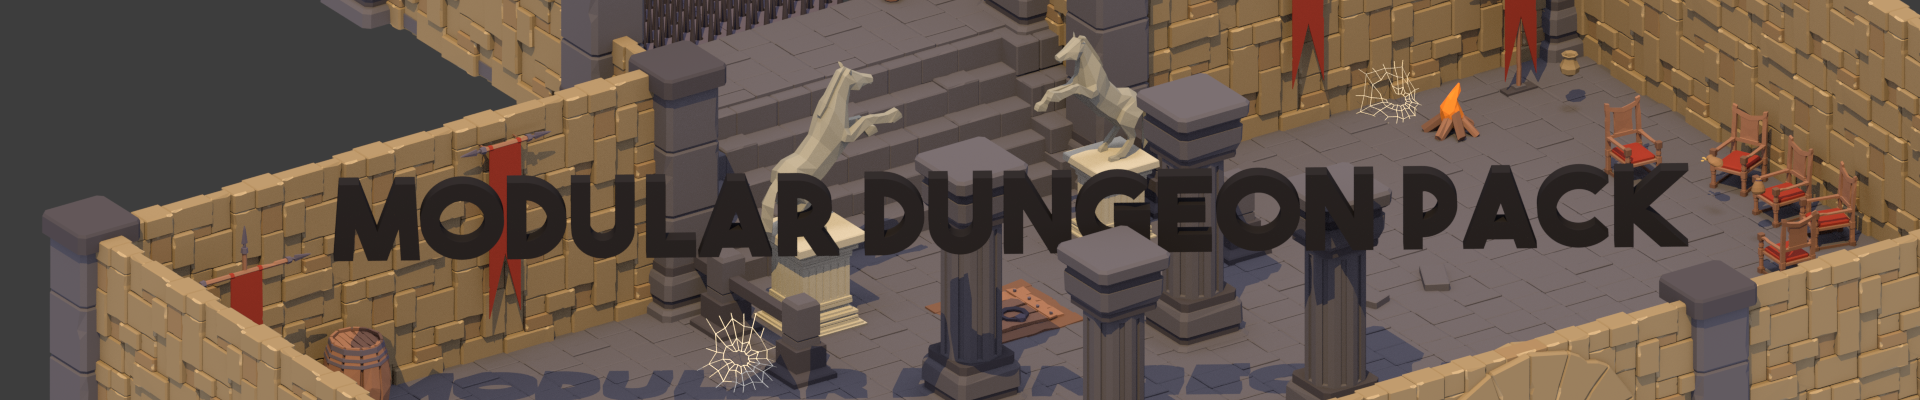 LowPoly Modular Dungeon Pack